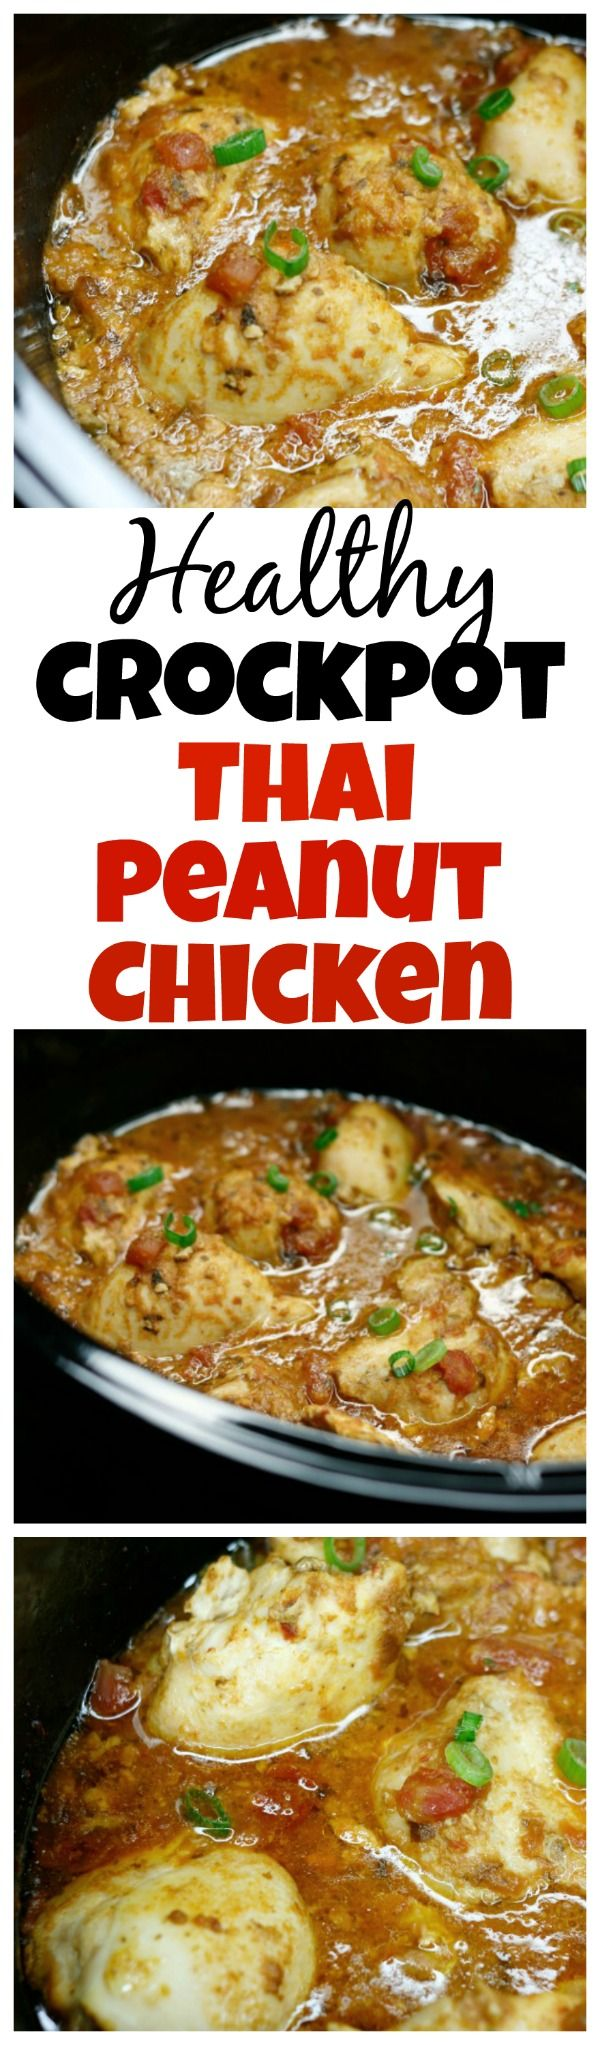 Healthy Crockpot Thai Peanut Chicken A Simple Yet Delicious Recipe The Whole F Chicken Slow